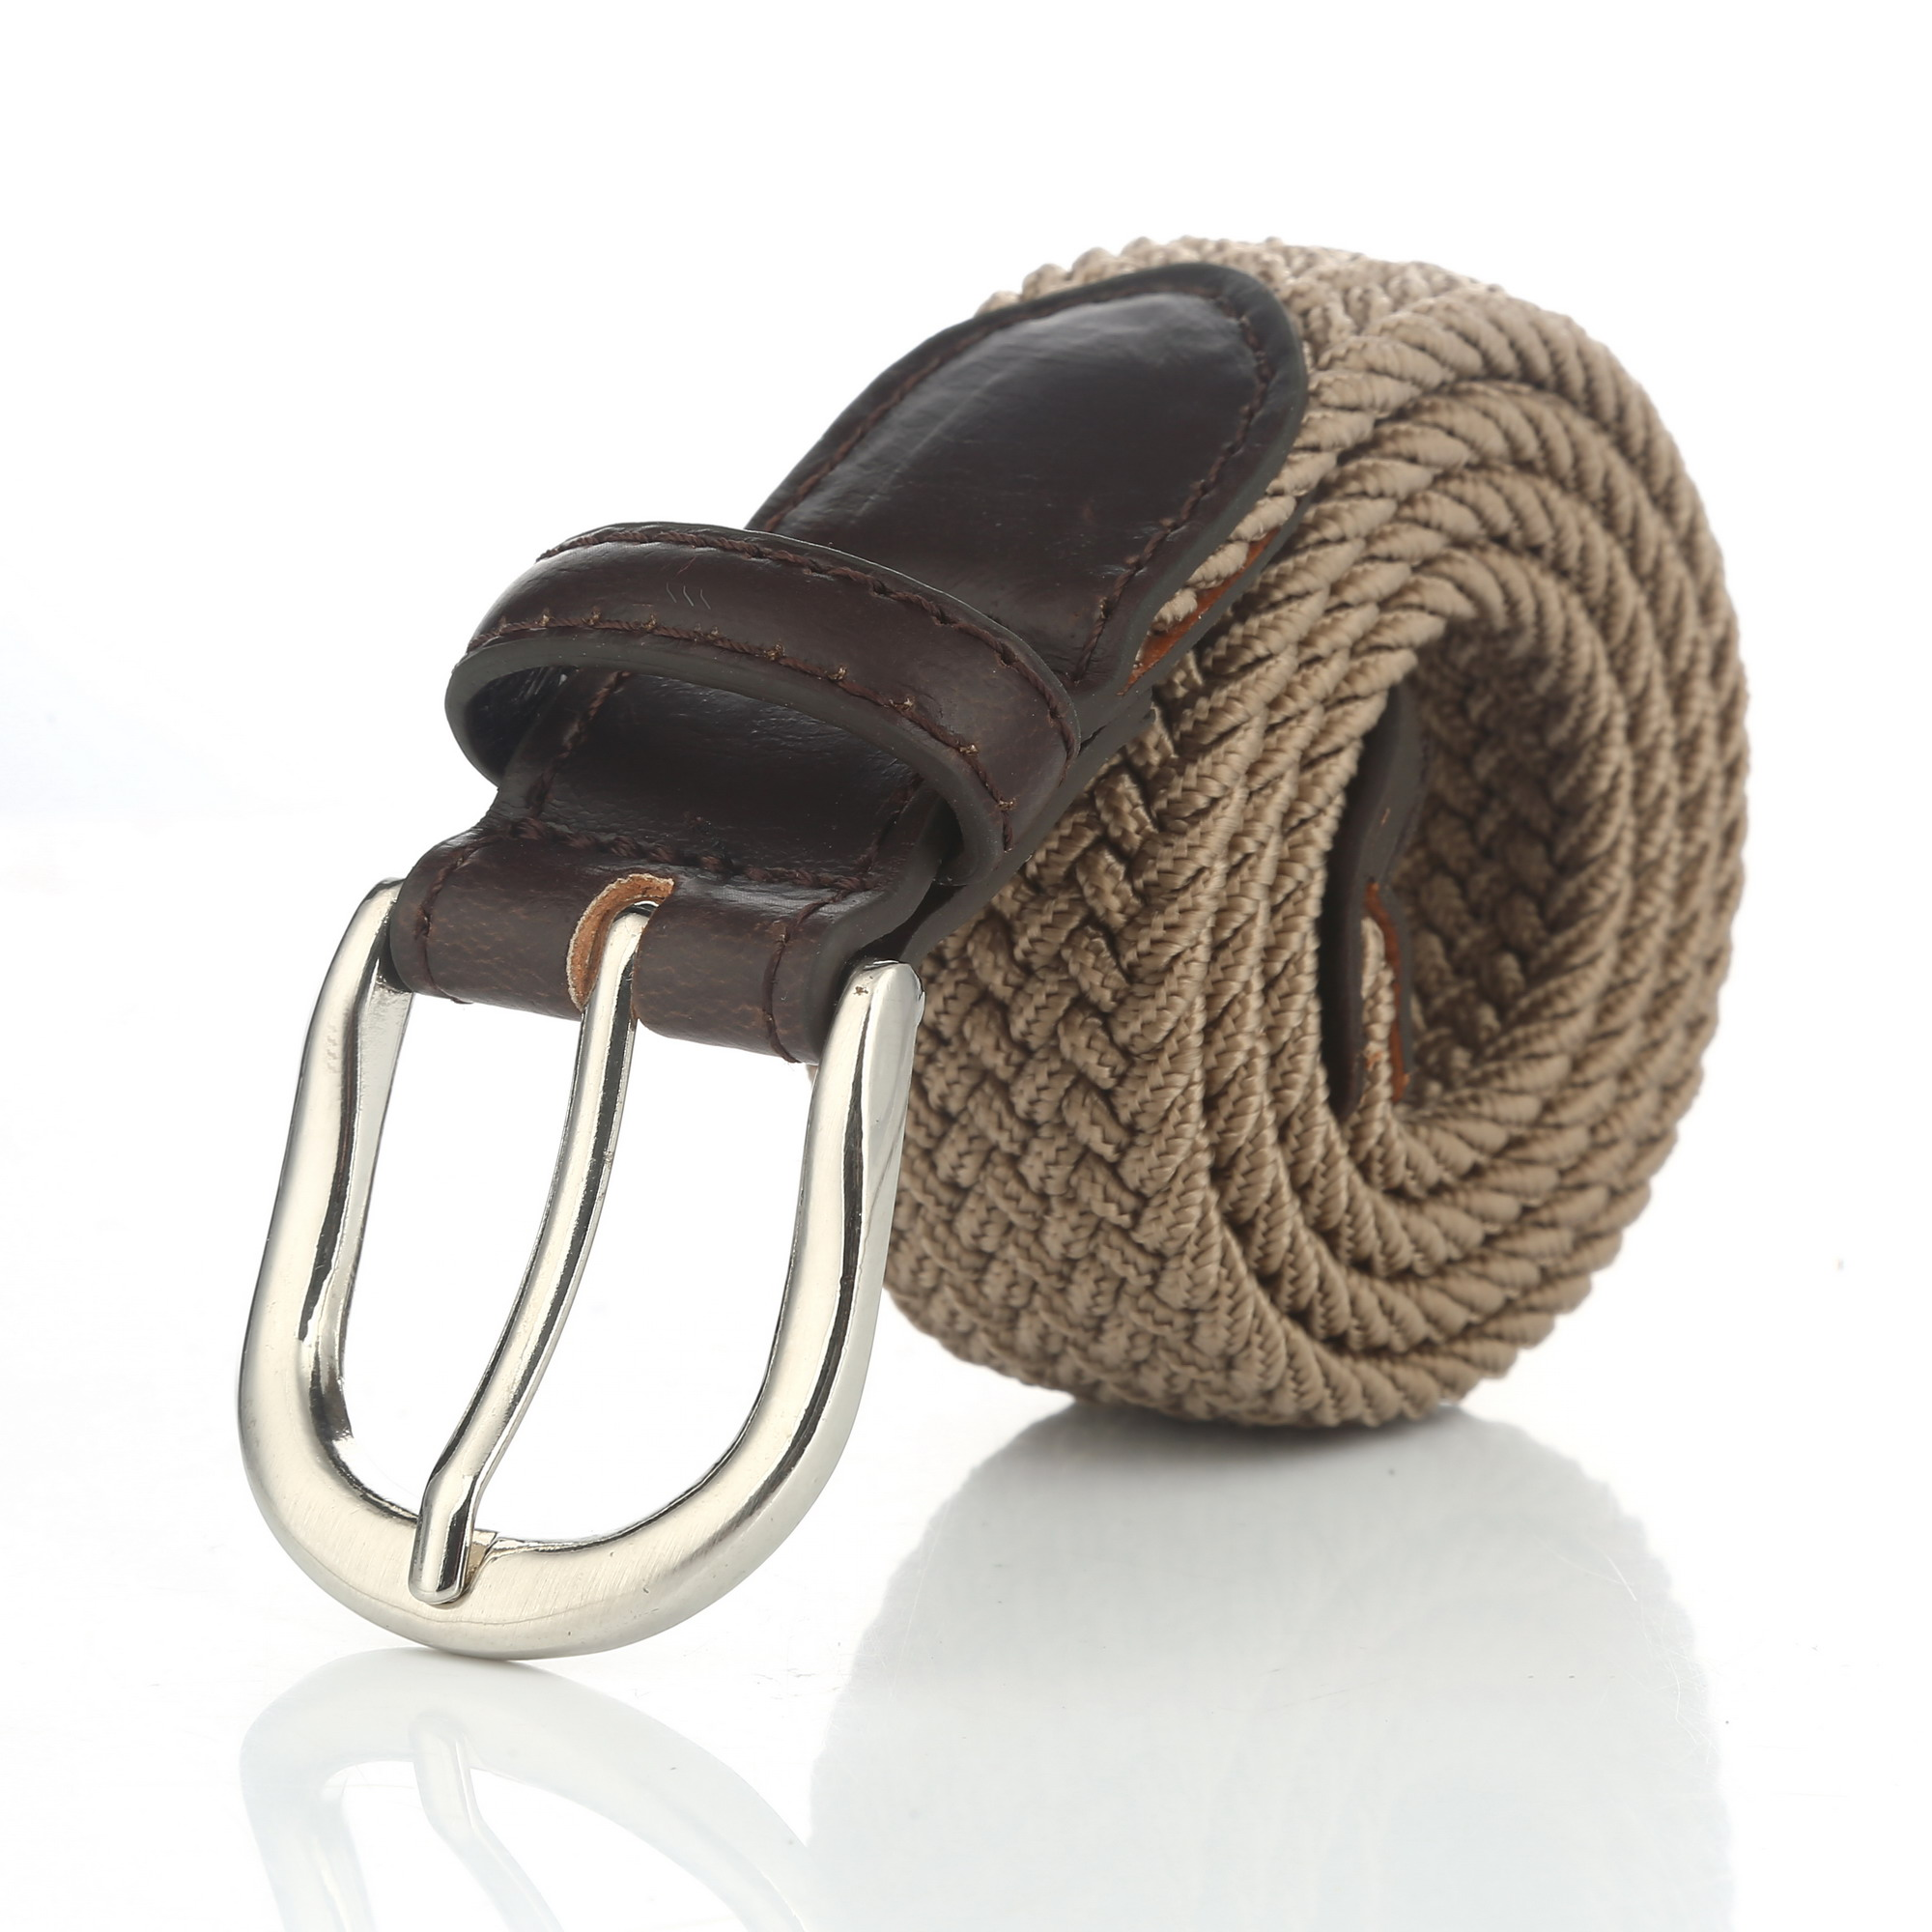 Gelante® Children's Canvas Elastic Fabric Woven Stretch Braided Belts 2012-Khaki-L (28-30)